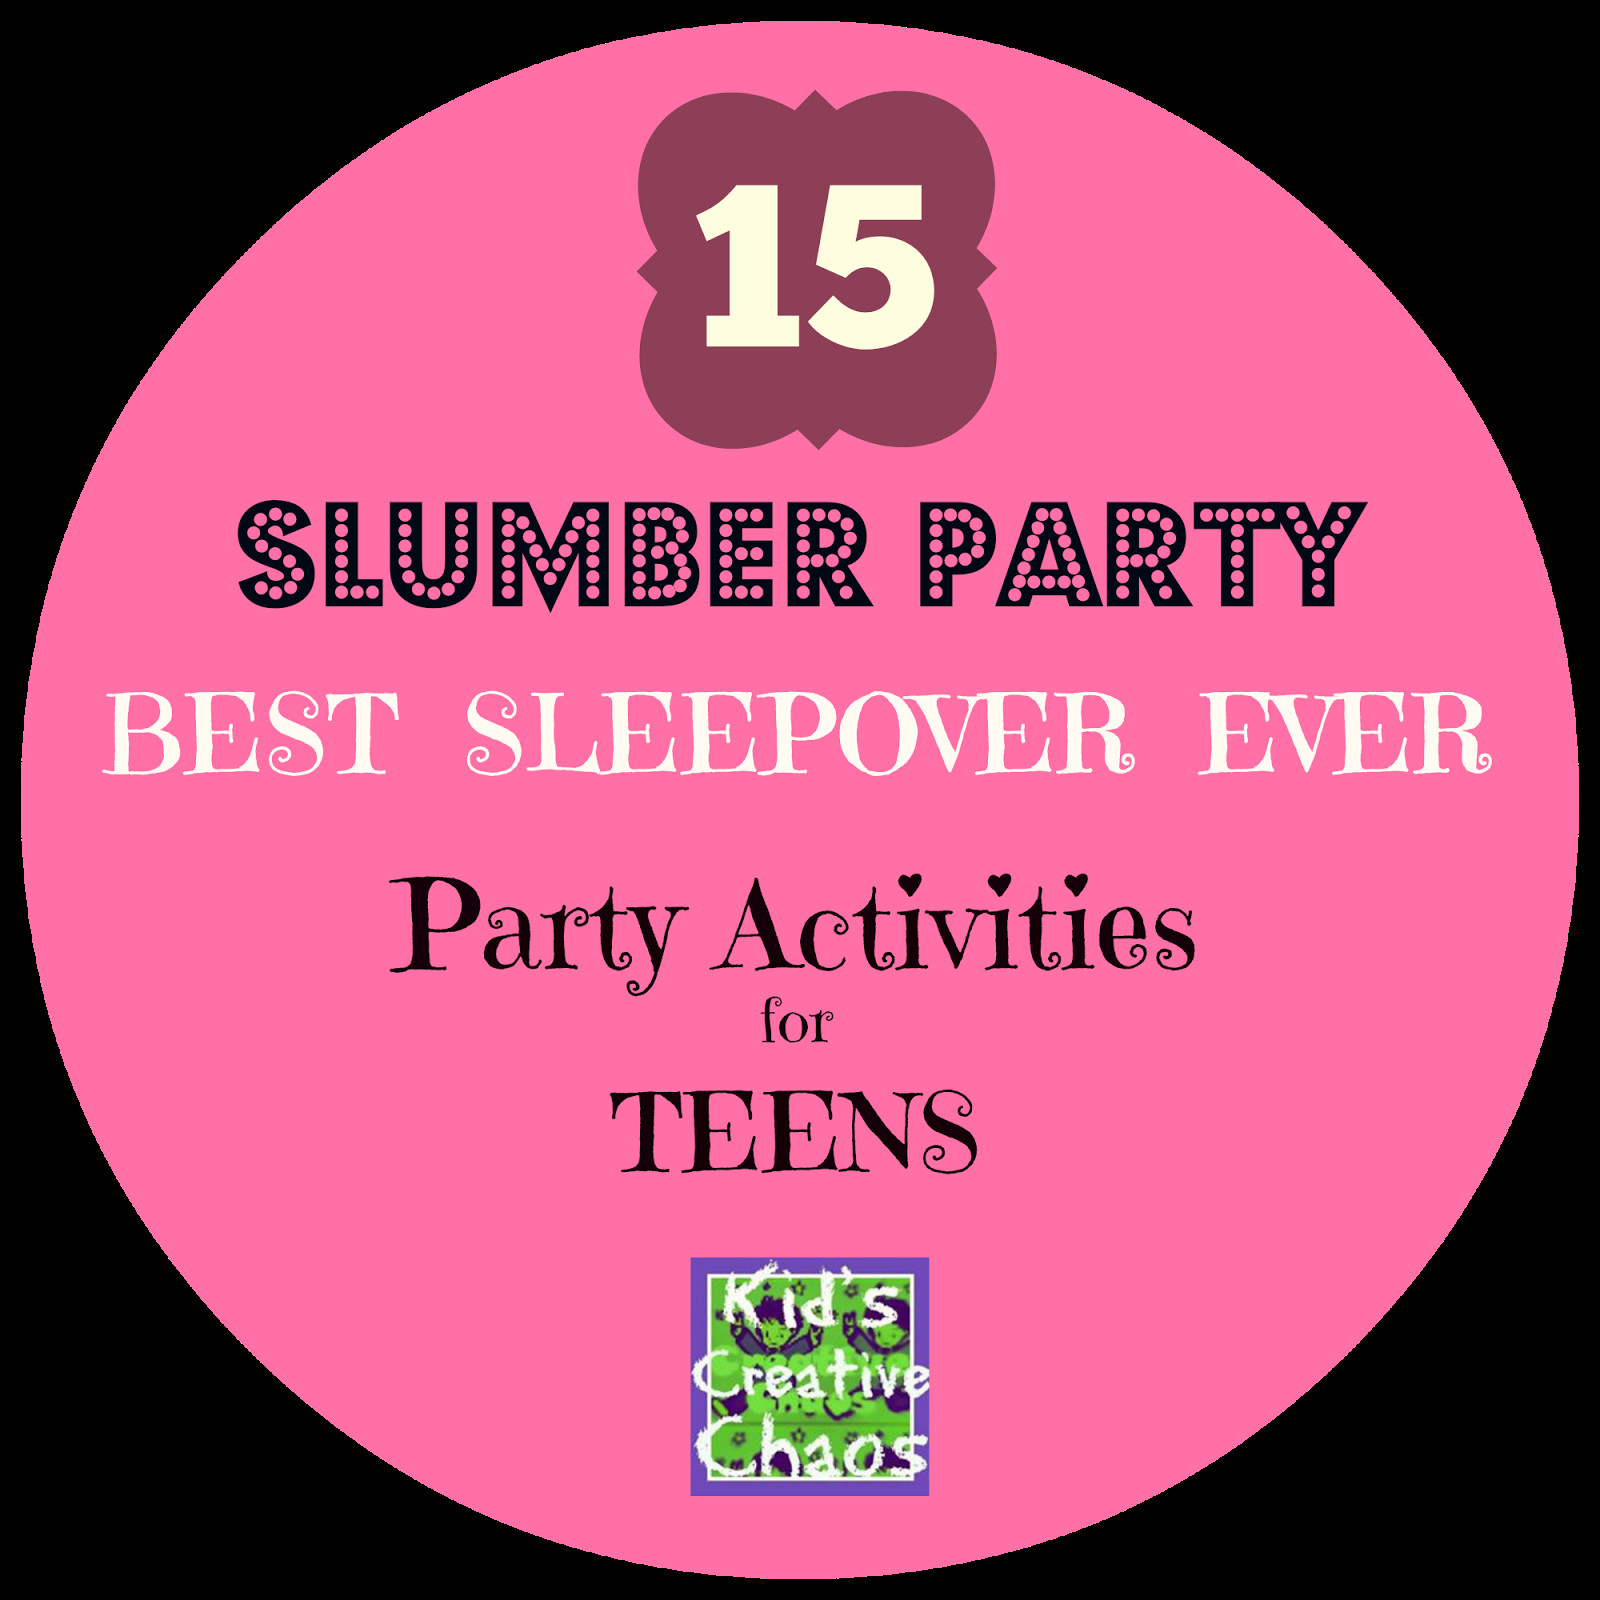 fun stuff for birthday parties ; fun-things-to-do-at-a-birthday-party-lovely-15-slumber-party-games-and-activities-for-teen-girls-best-sleepover-of-fun-things-to-do-at-a-birthday-party